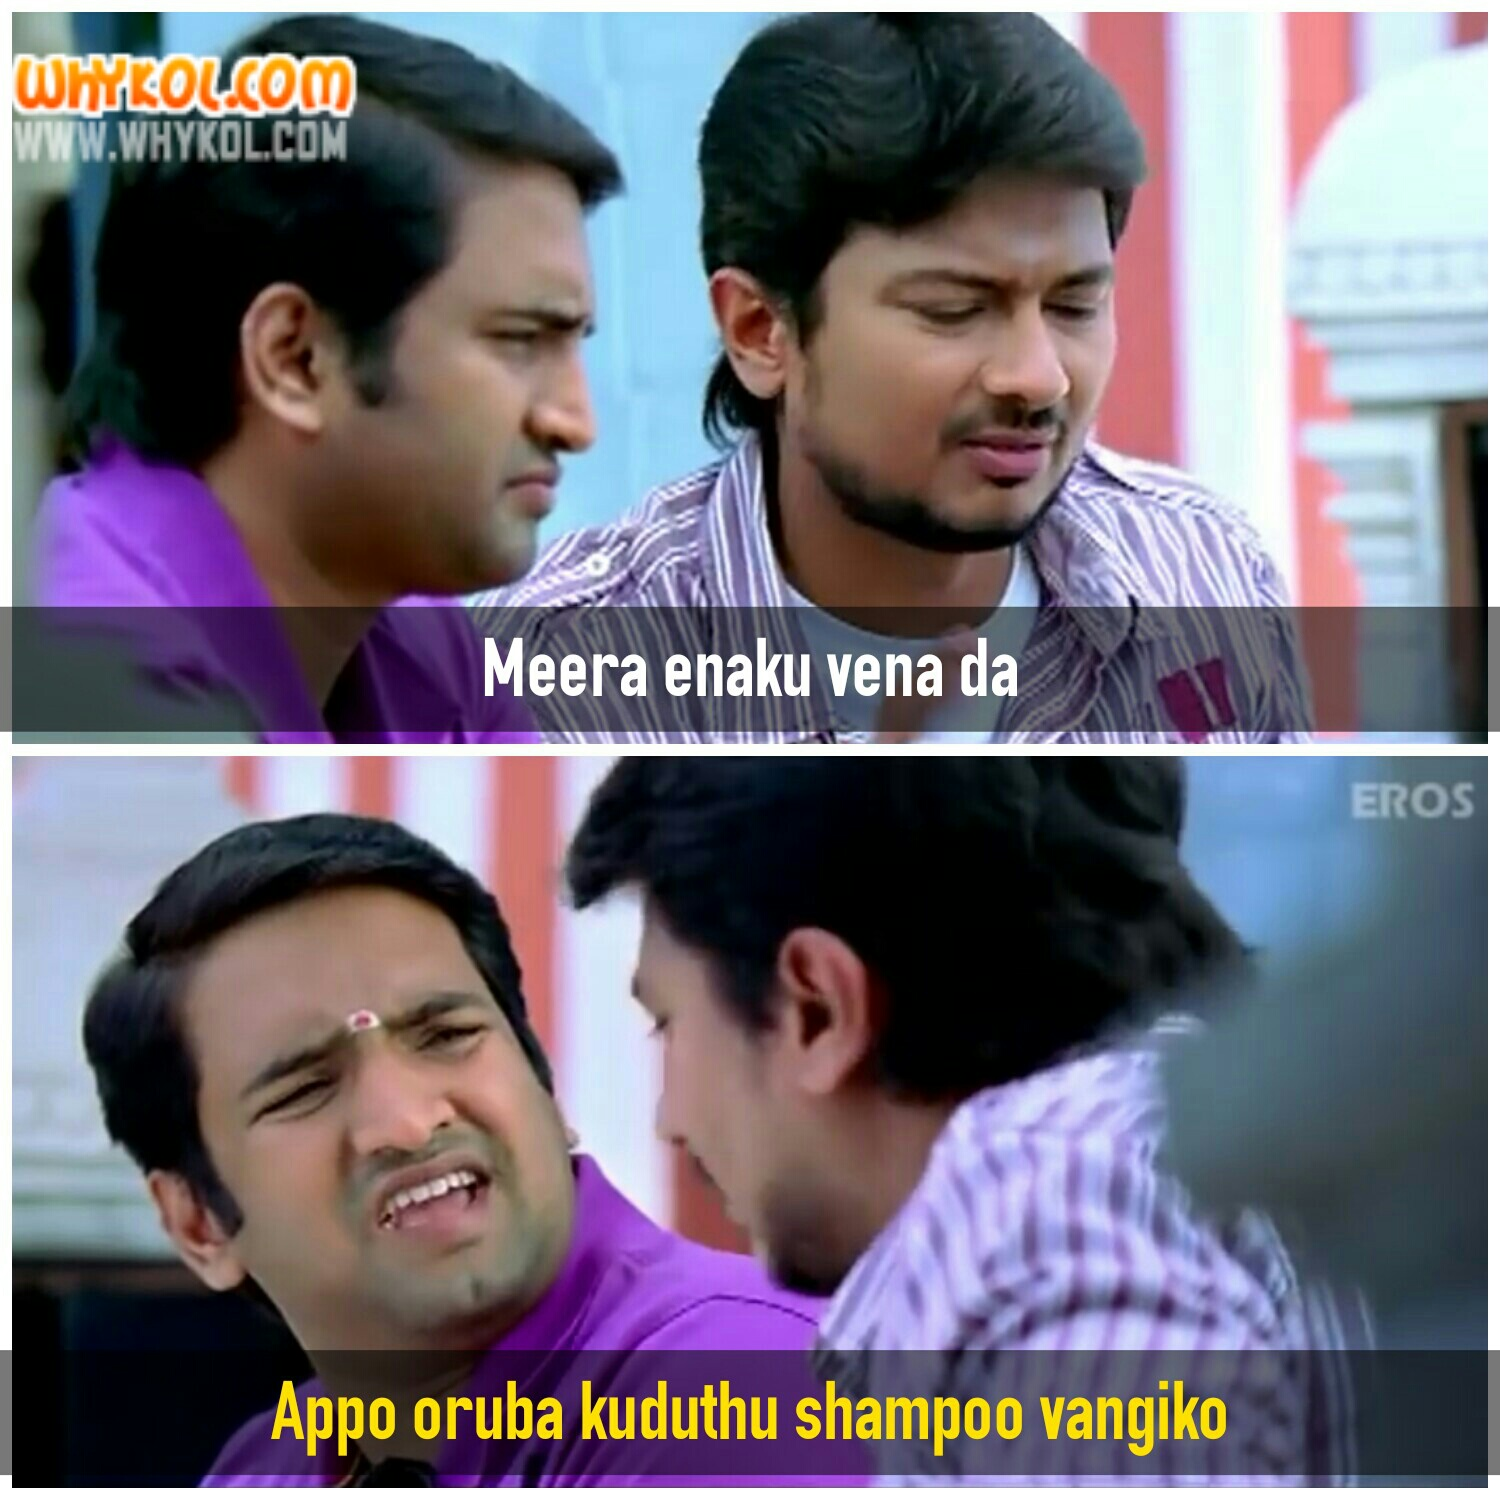 Santhanam Funny counter in temple from OK OK - WhyKol tamil